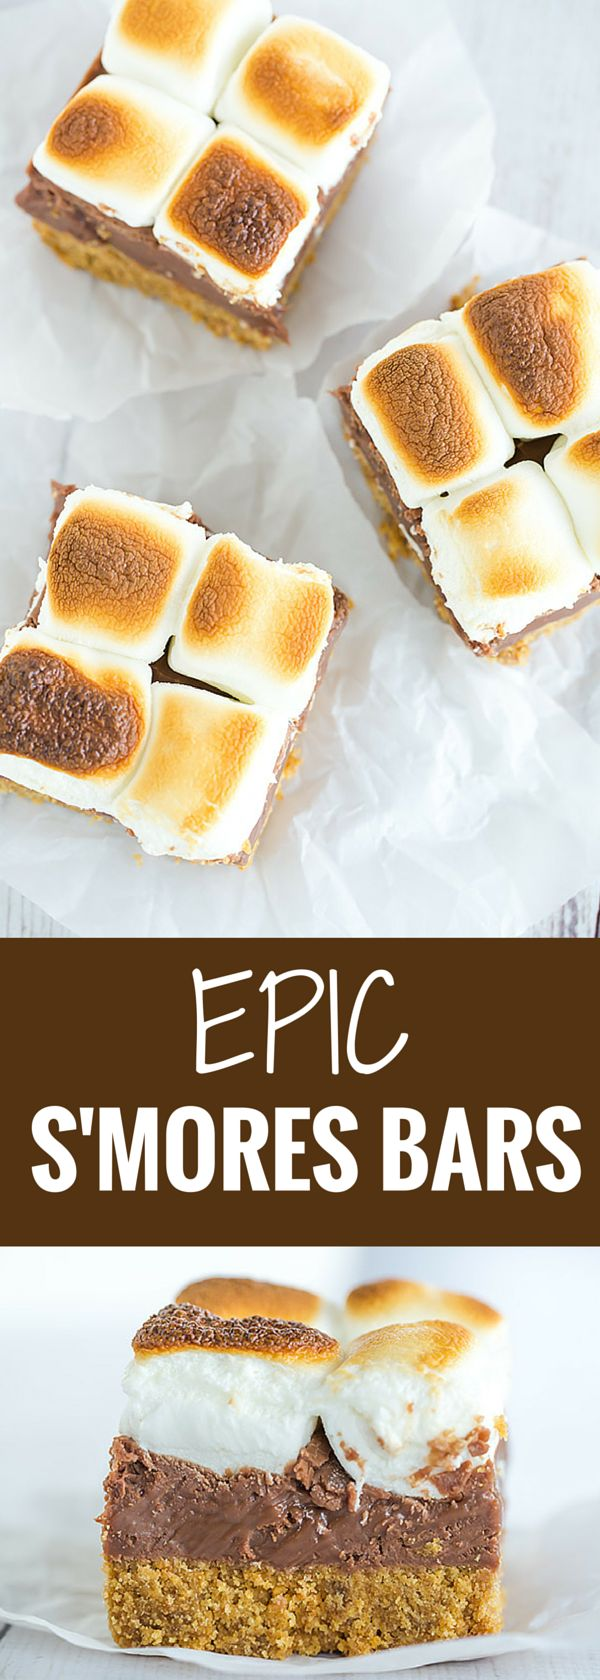 These s'mores bars boast a thick graham crust, a fudgy milk chocolate layer, and are topped with toasted marshmallows, of course!